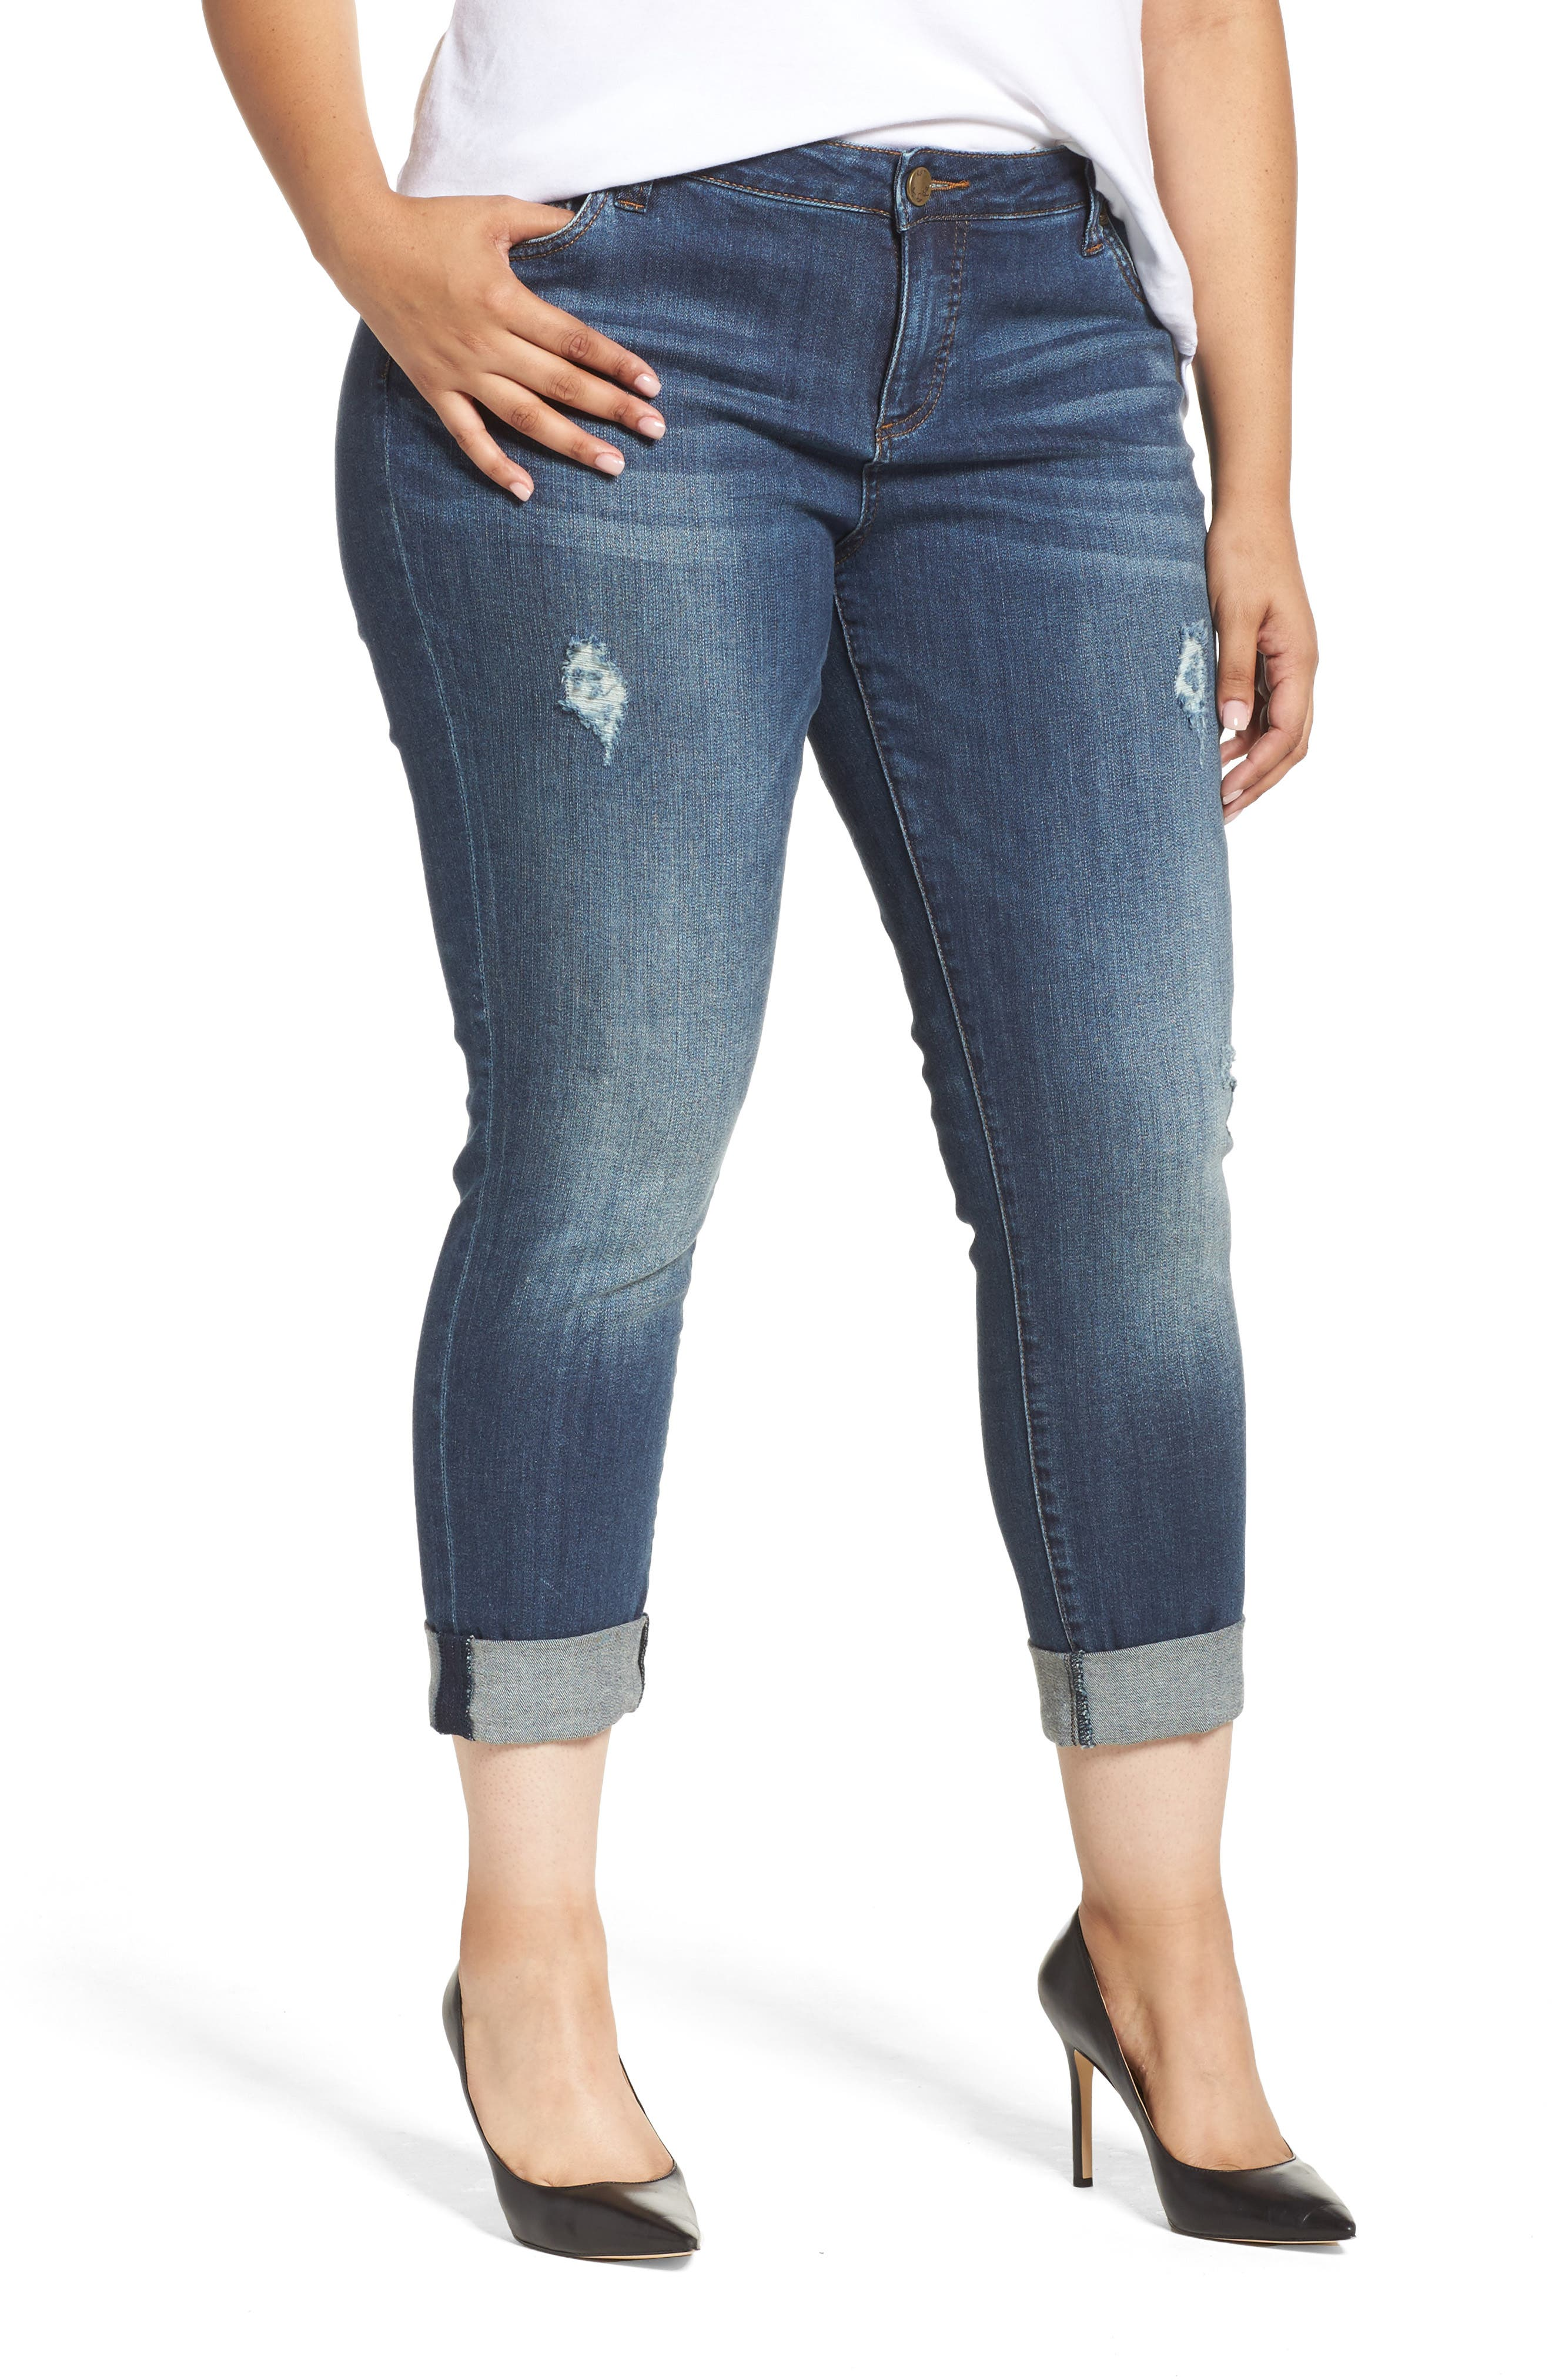 Main Image - KUT from the Kloth Catherine Ripped Boyfriend Jeans (Allowing) (Plus Size)